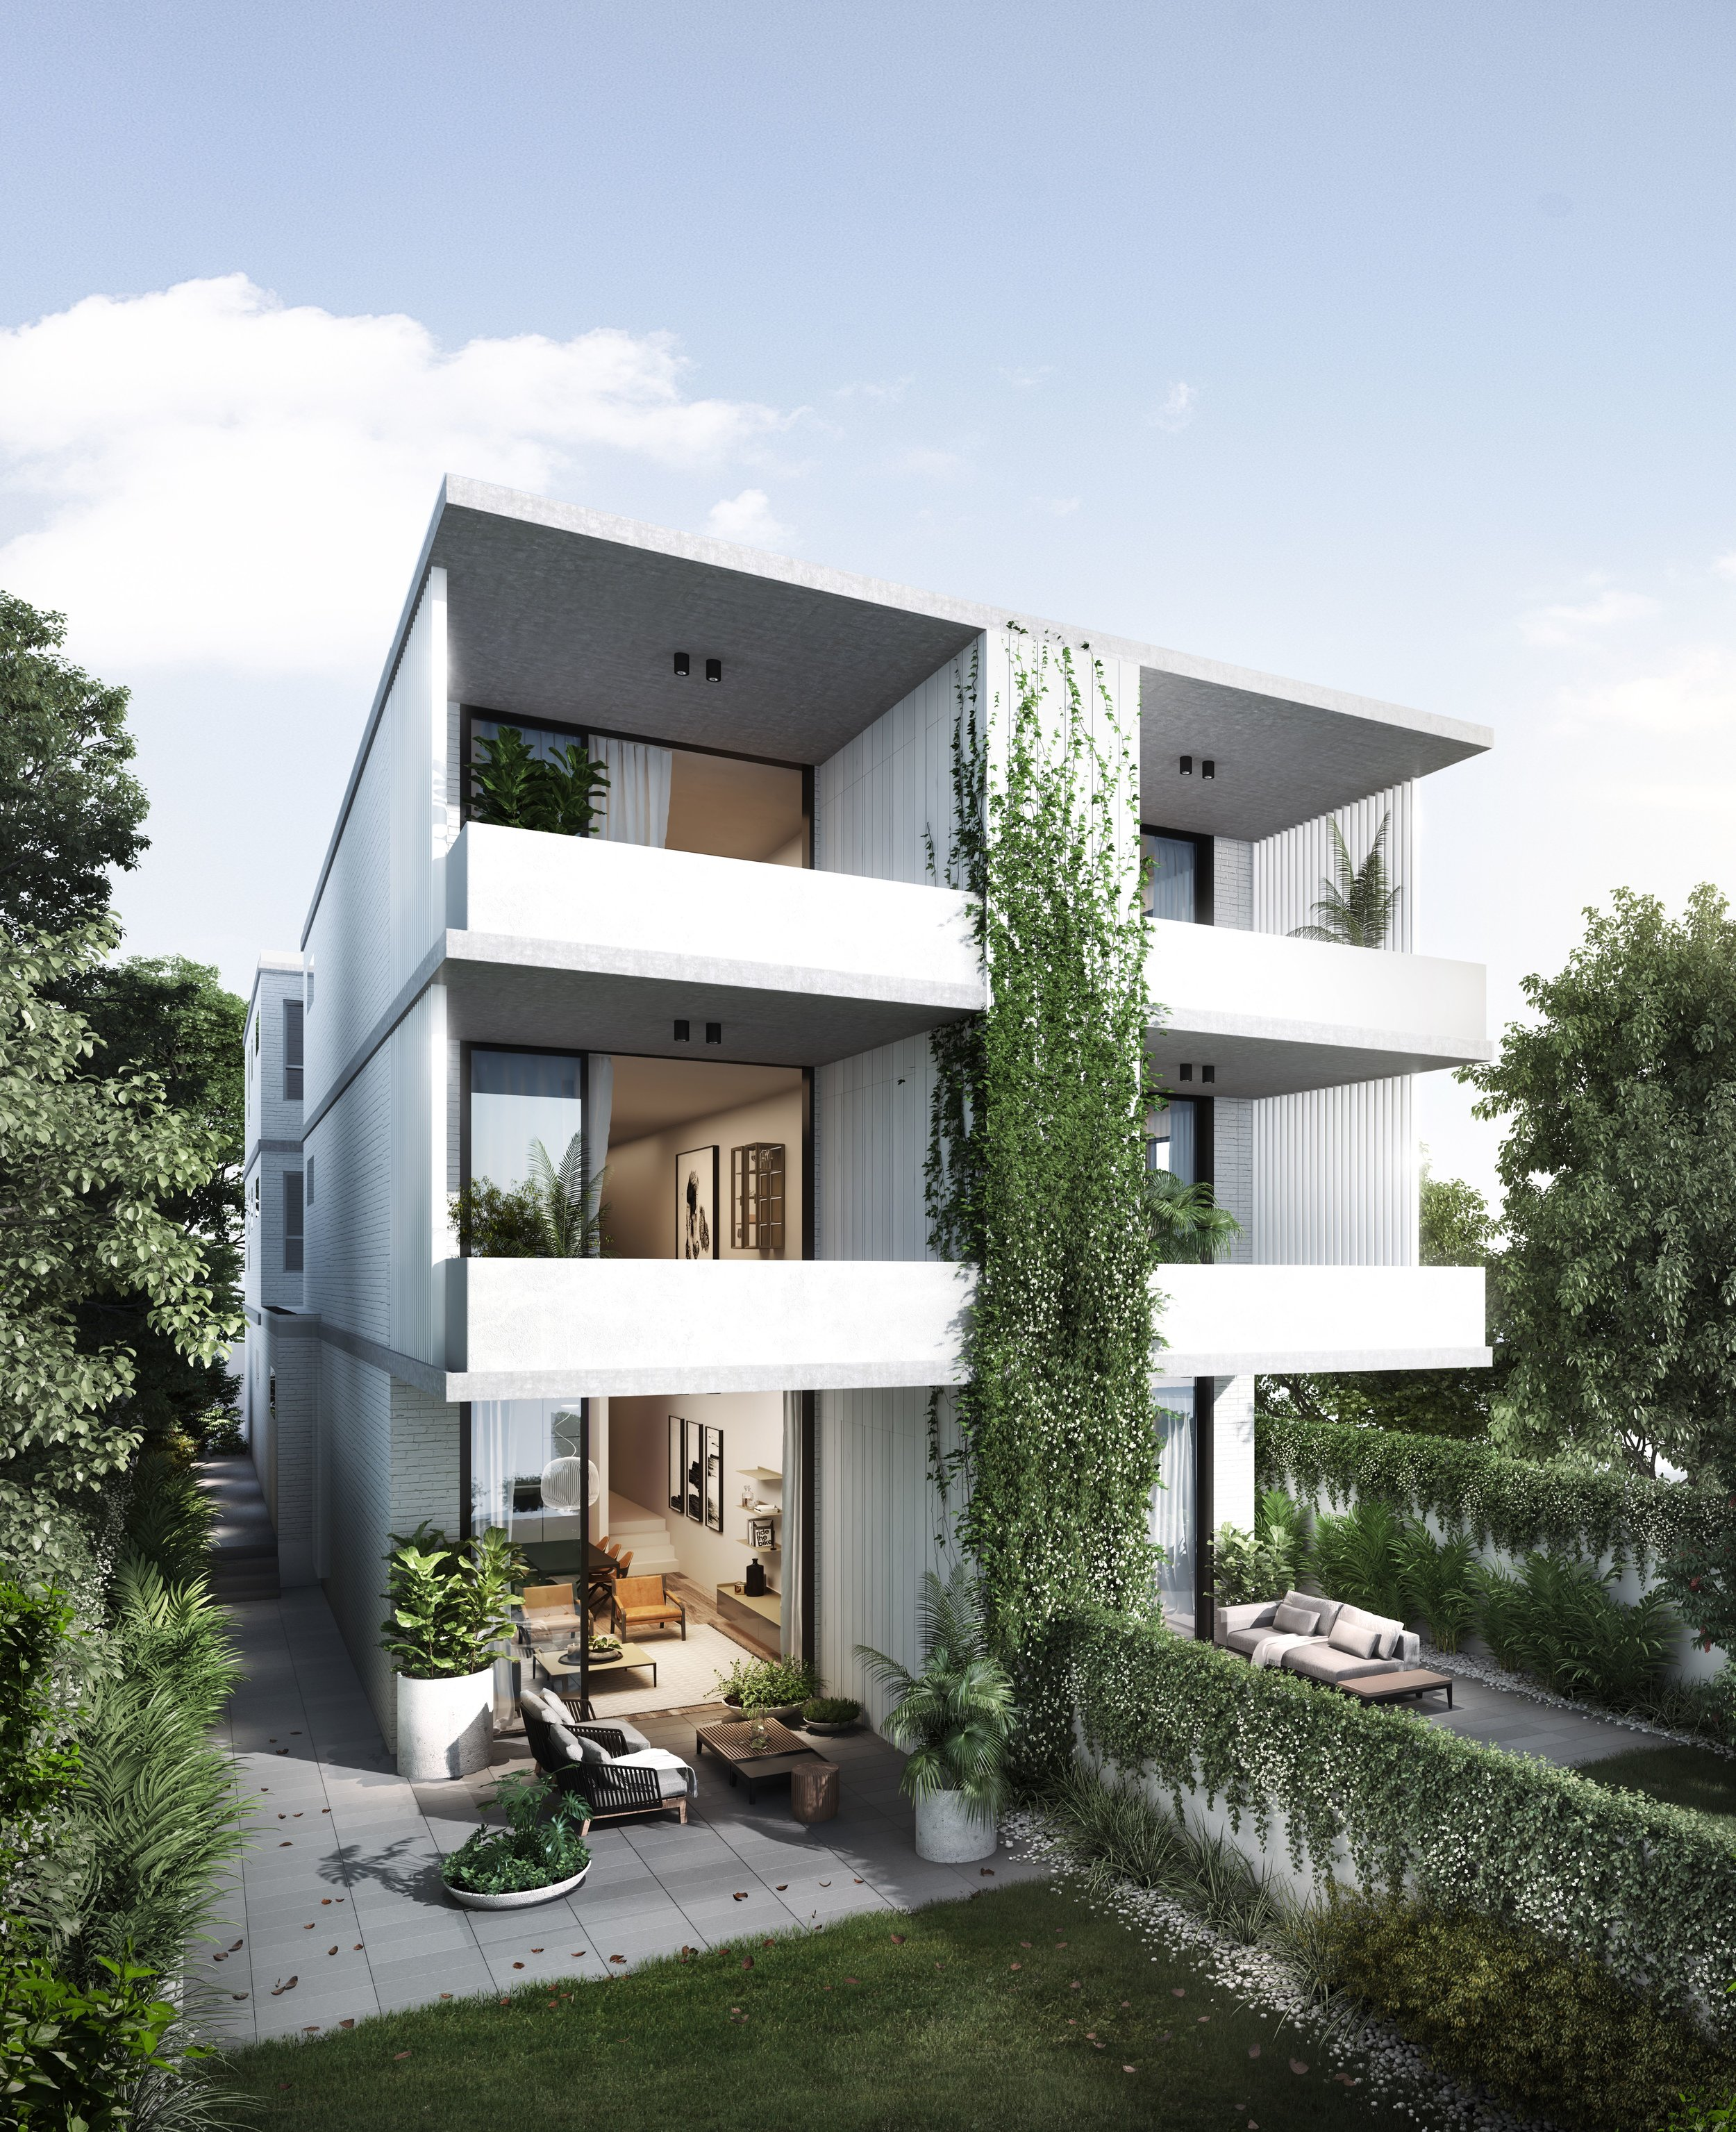 Balancing Form & Space - Formspace is an Australian based property developer specialising in boutique real-estate ranging from multi-unit residential to commercial warehousing. The company focus is to produce spaces that are carefully crafted to be both elegant and functional.